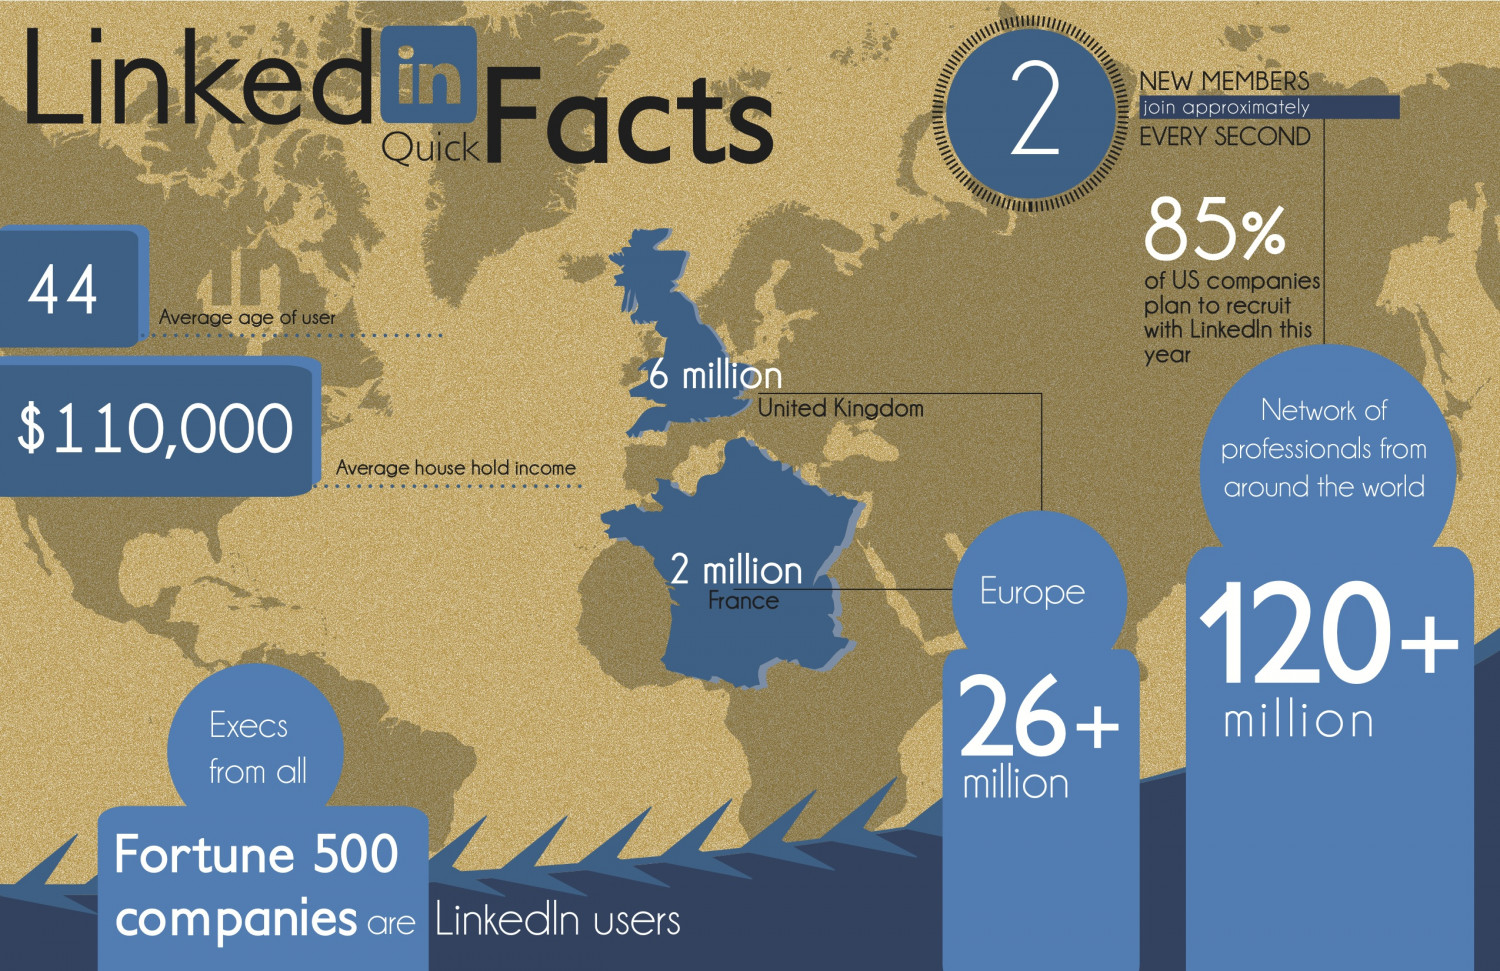 LinkedIn Quick Facts  Infographic